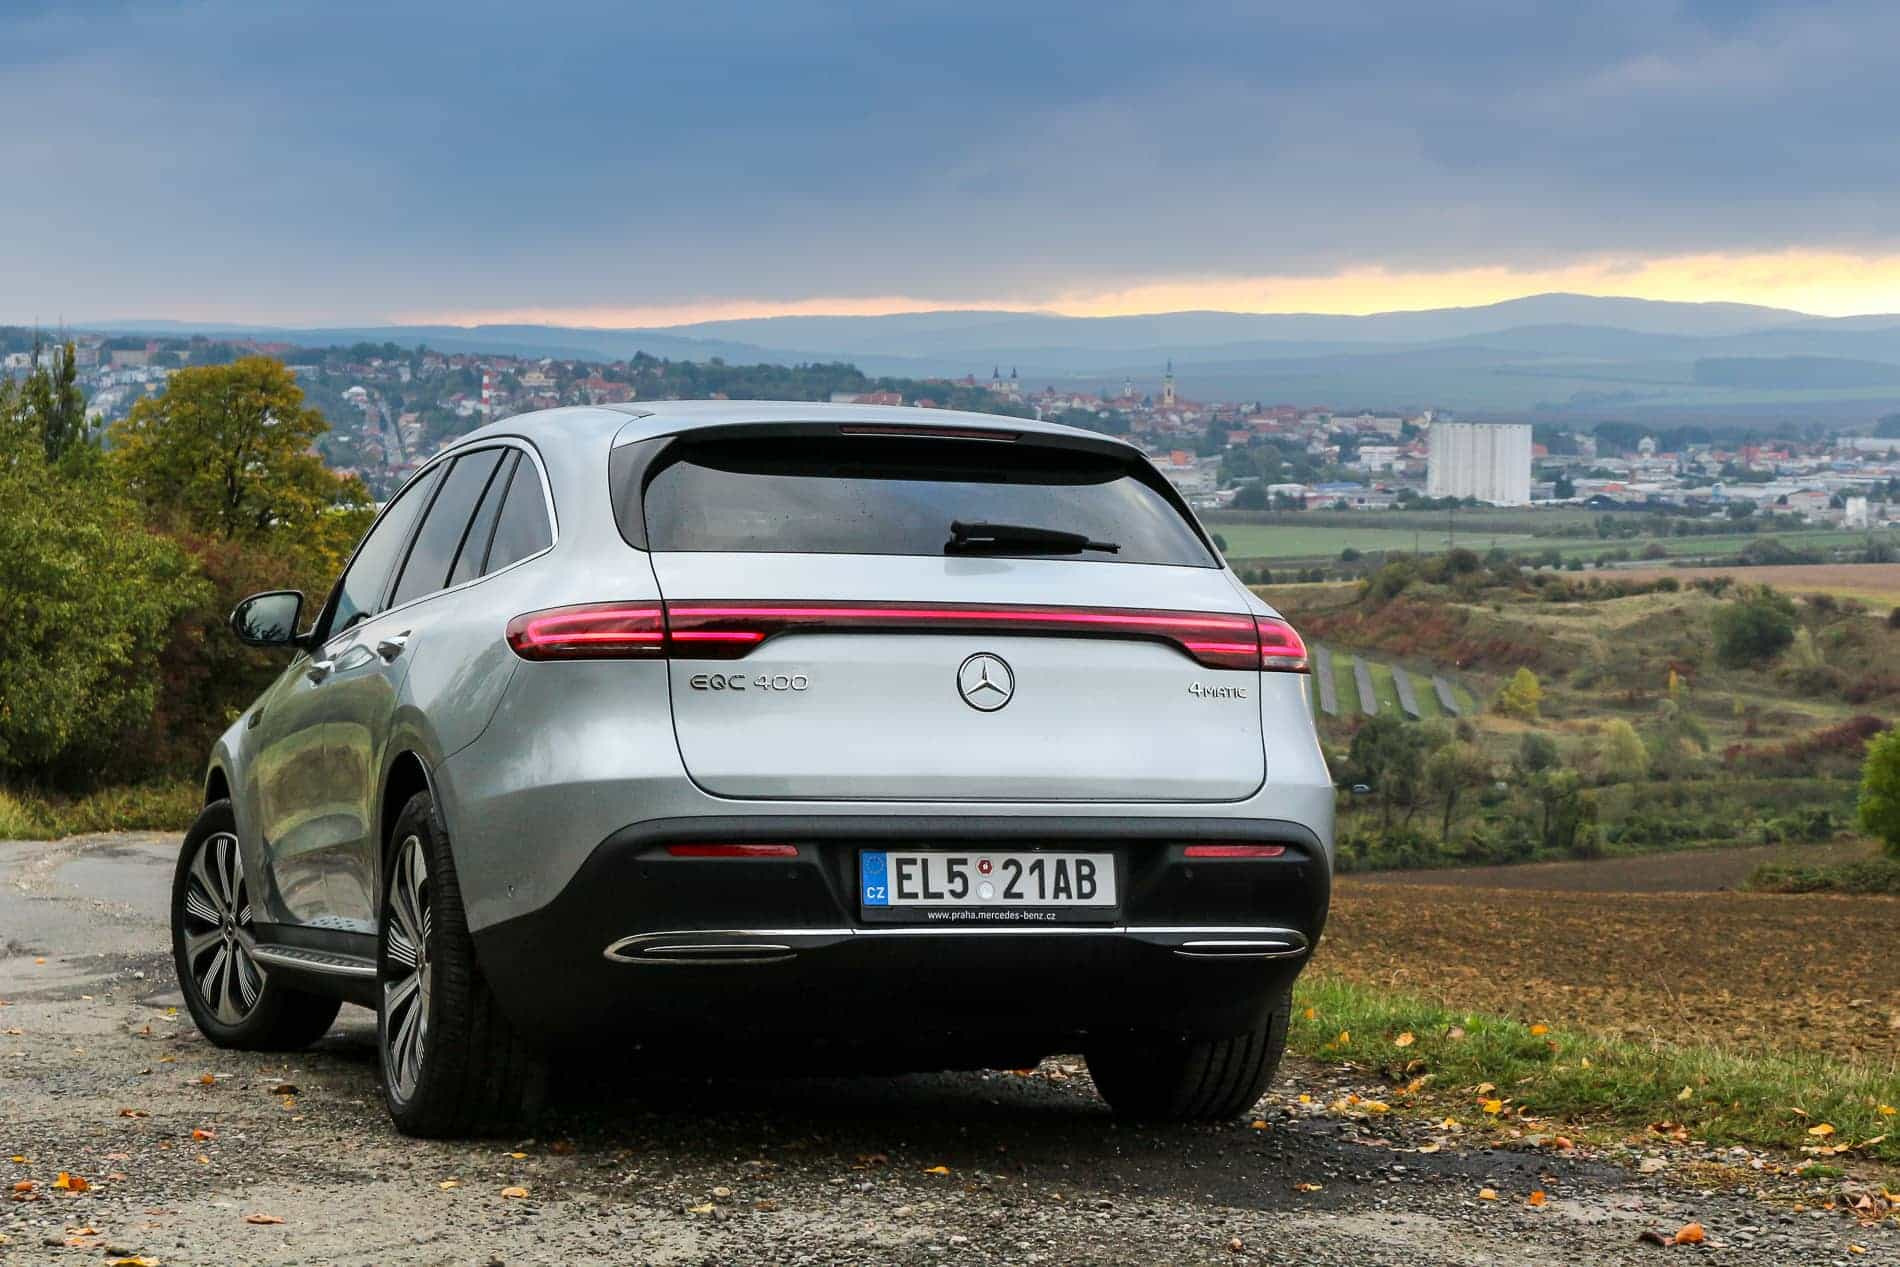 Mercedes-Benz EQC 400 4Matic 11